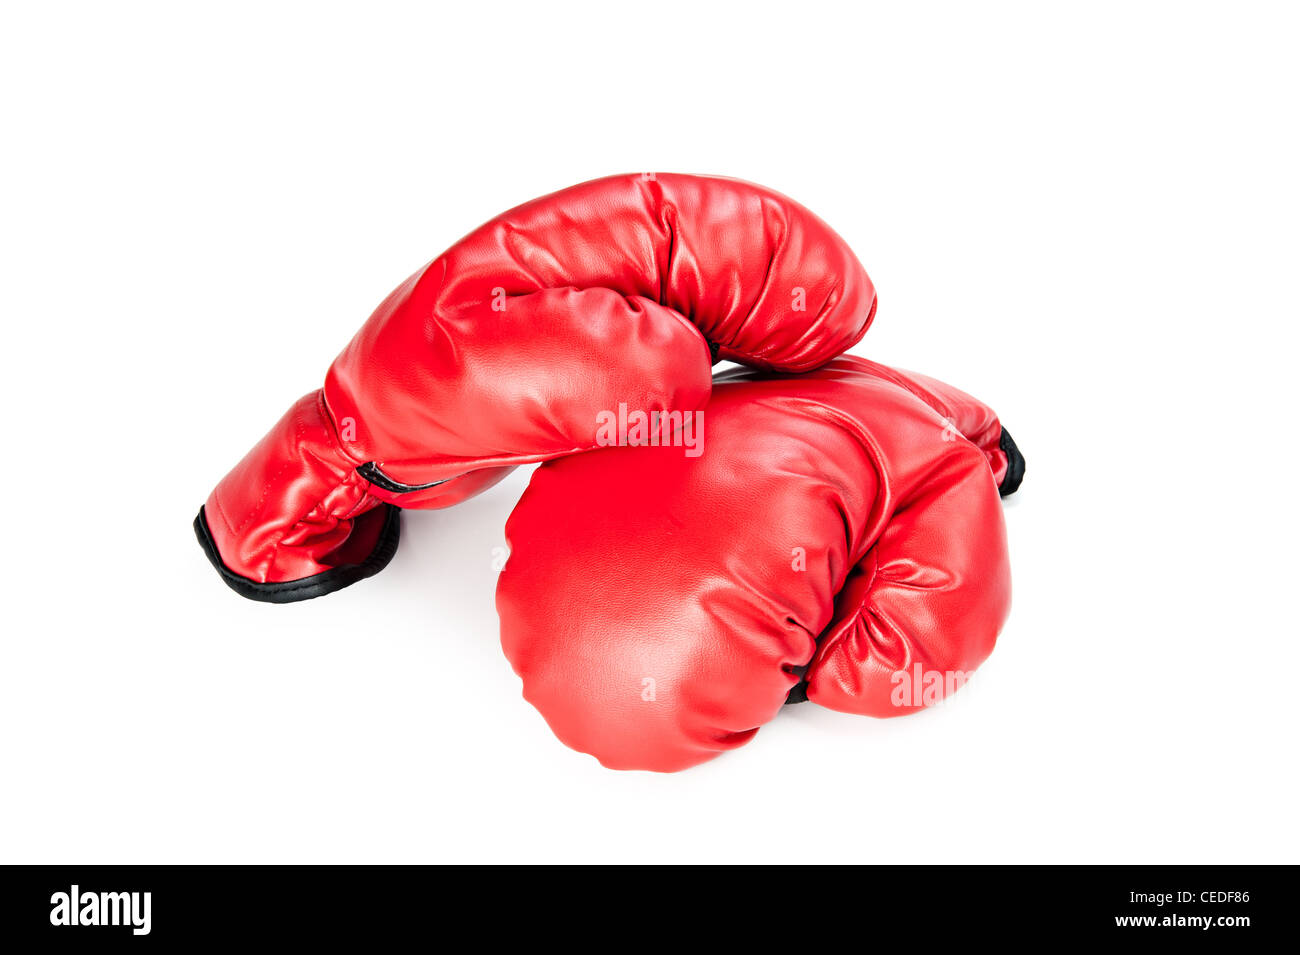 A pair of new boxing gloves on a white background - Stock Image